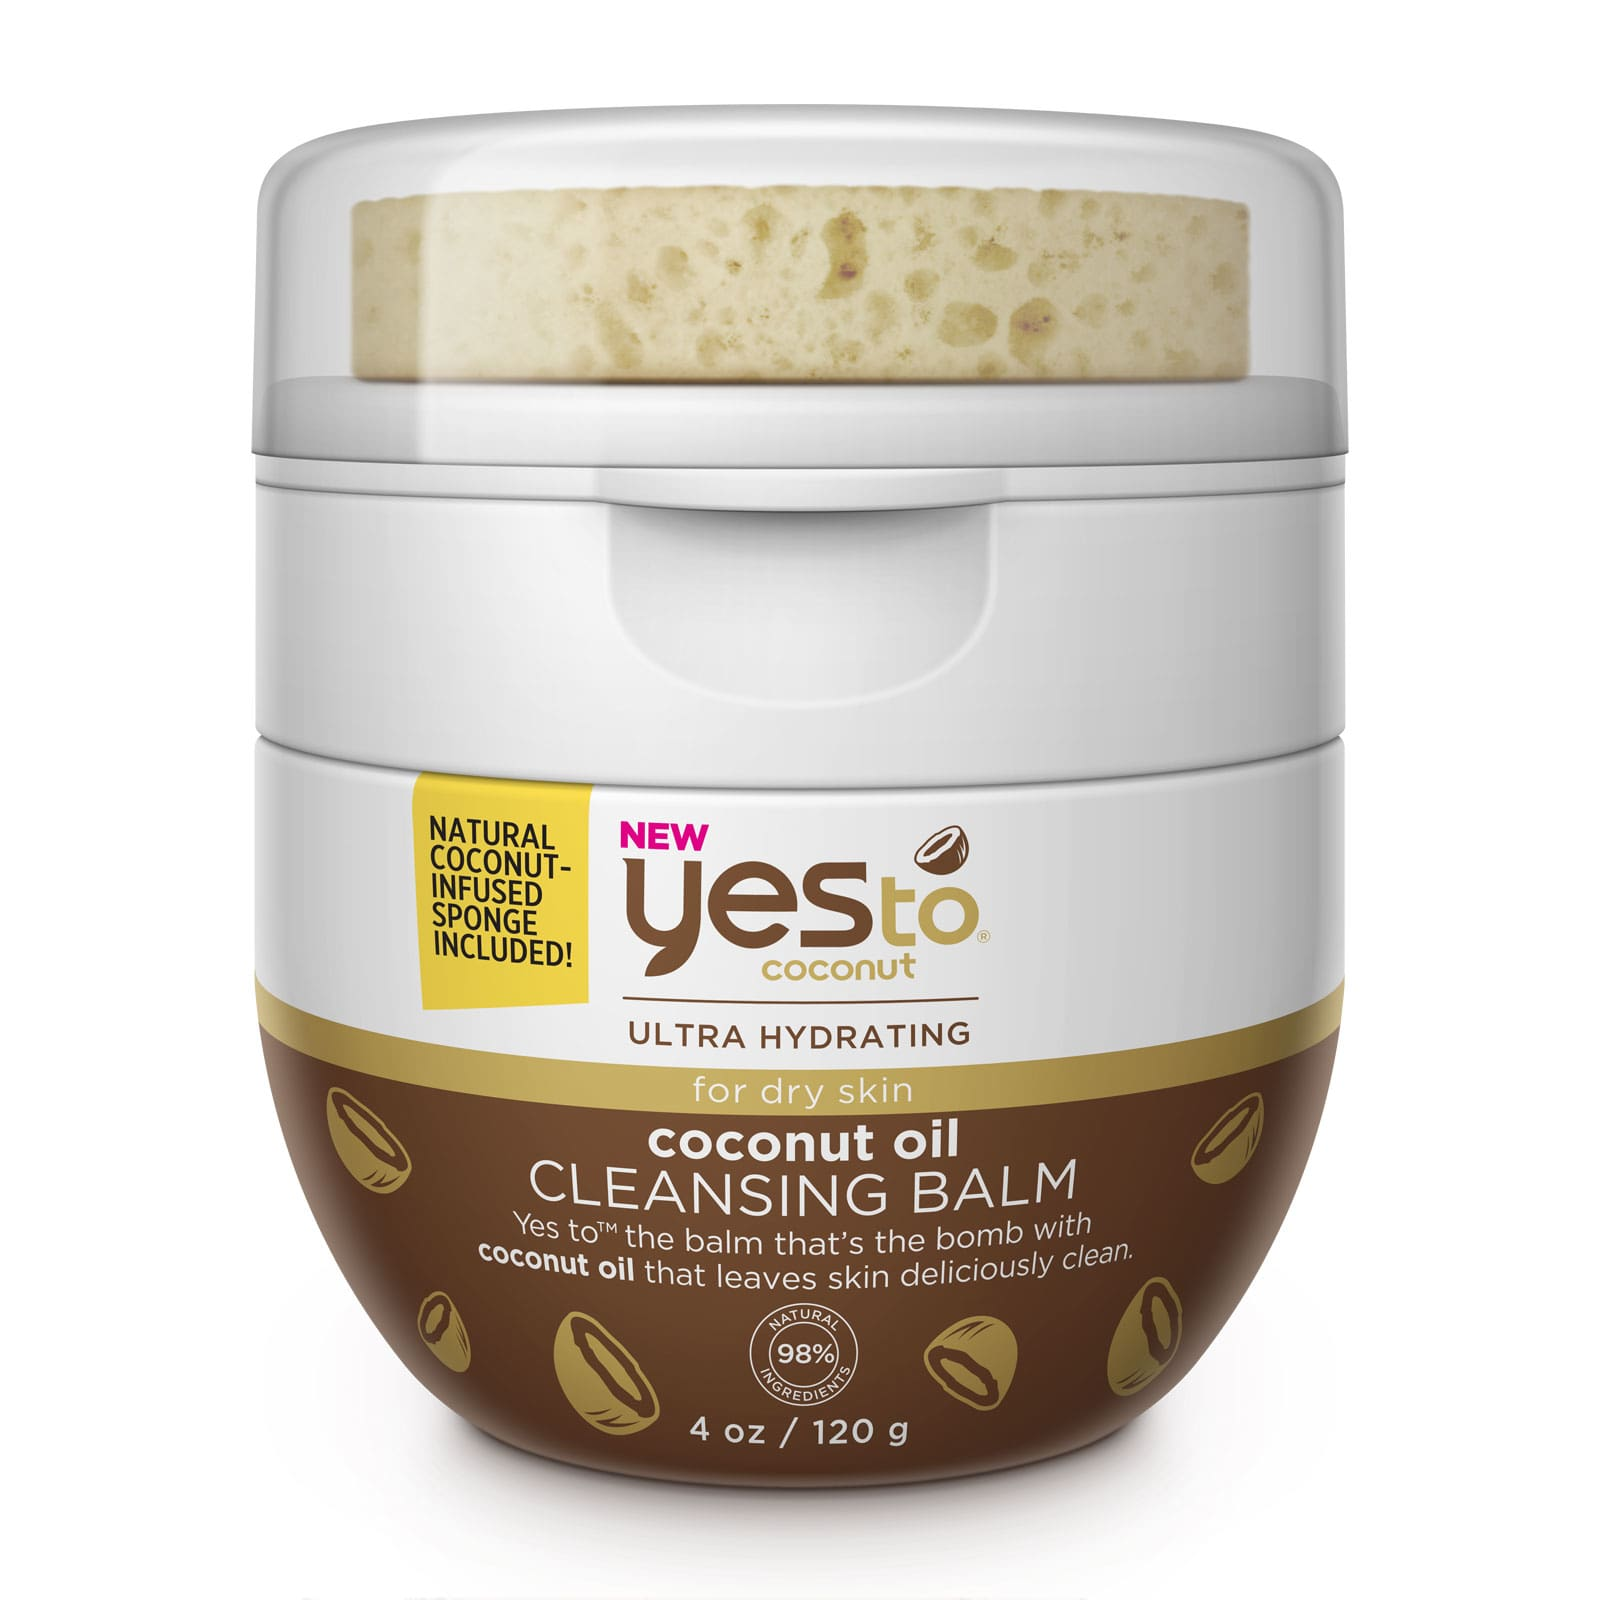 Yes To Coconut Oil Cleansing Balm 120g